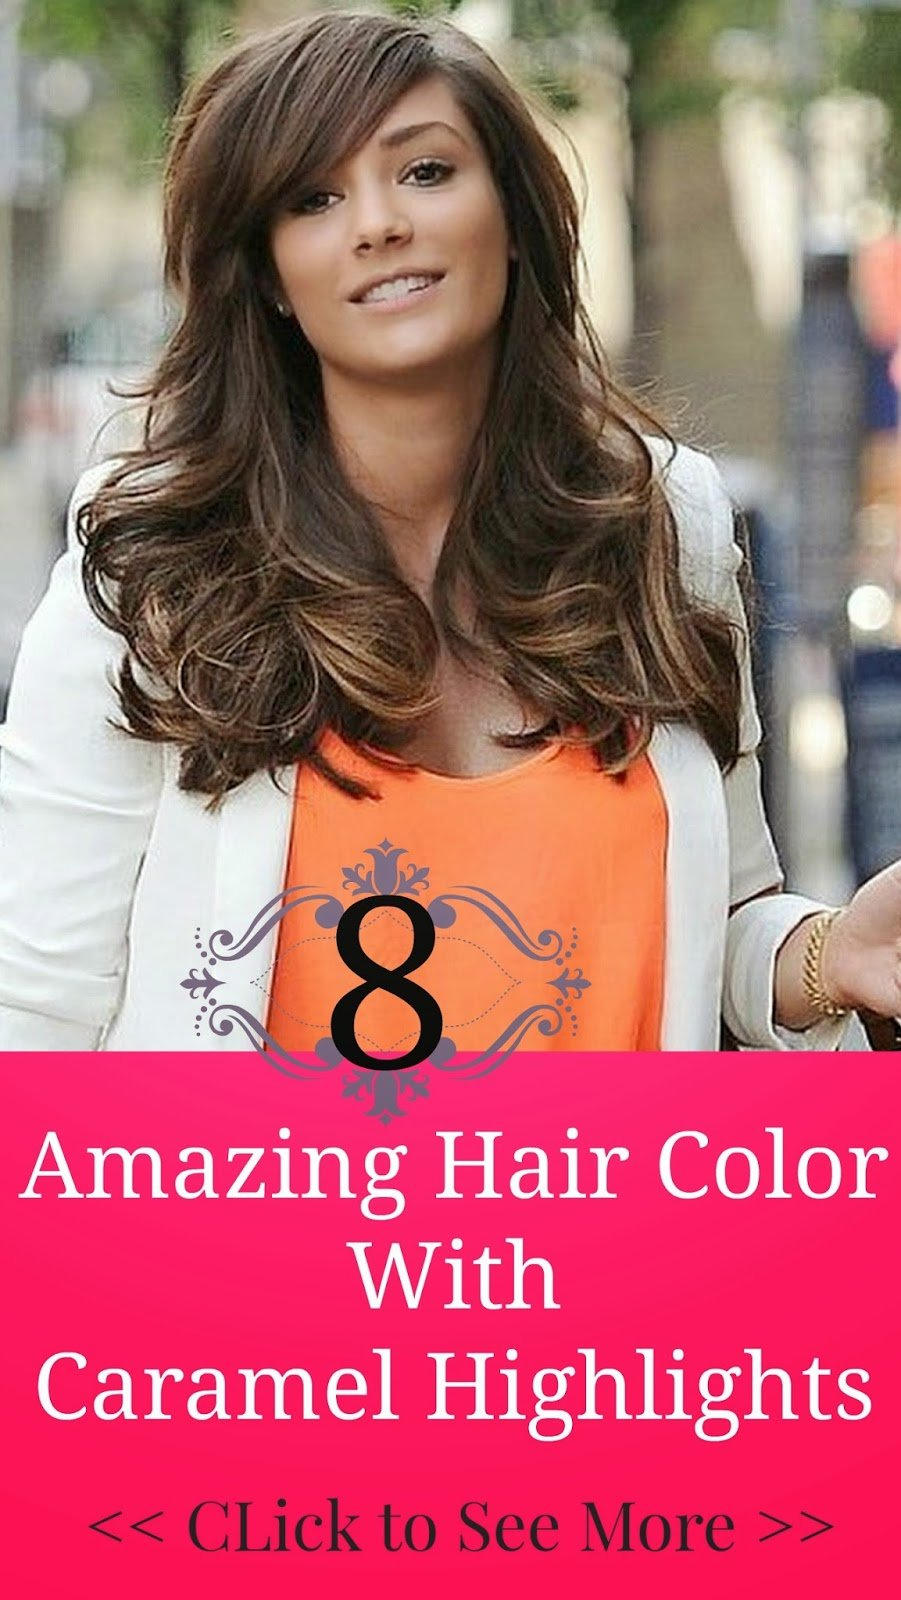 Free 8 Amazing Hair Color With Caramel Highlights Hairstyles Wallpaper